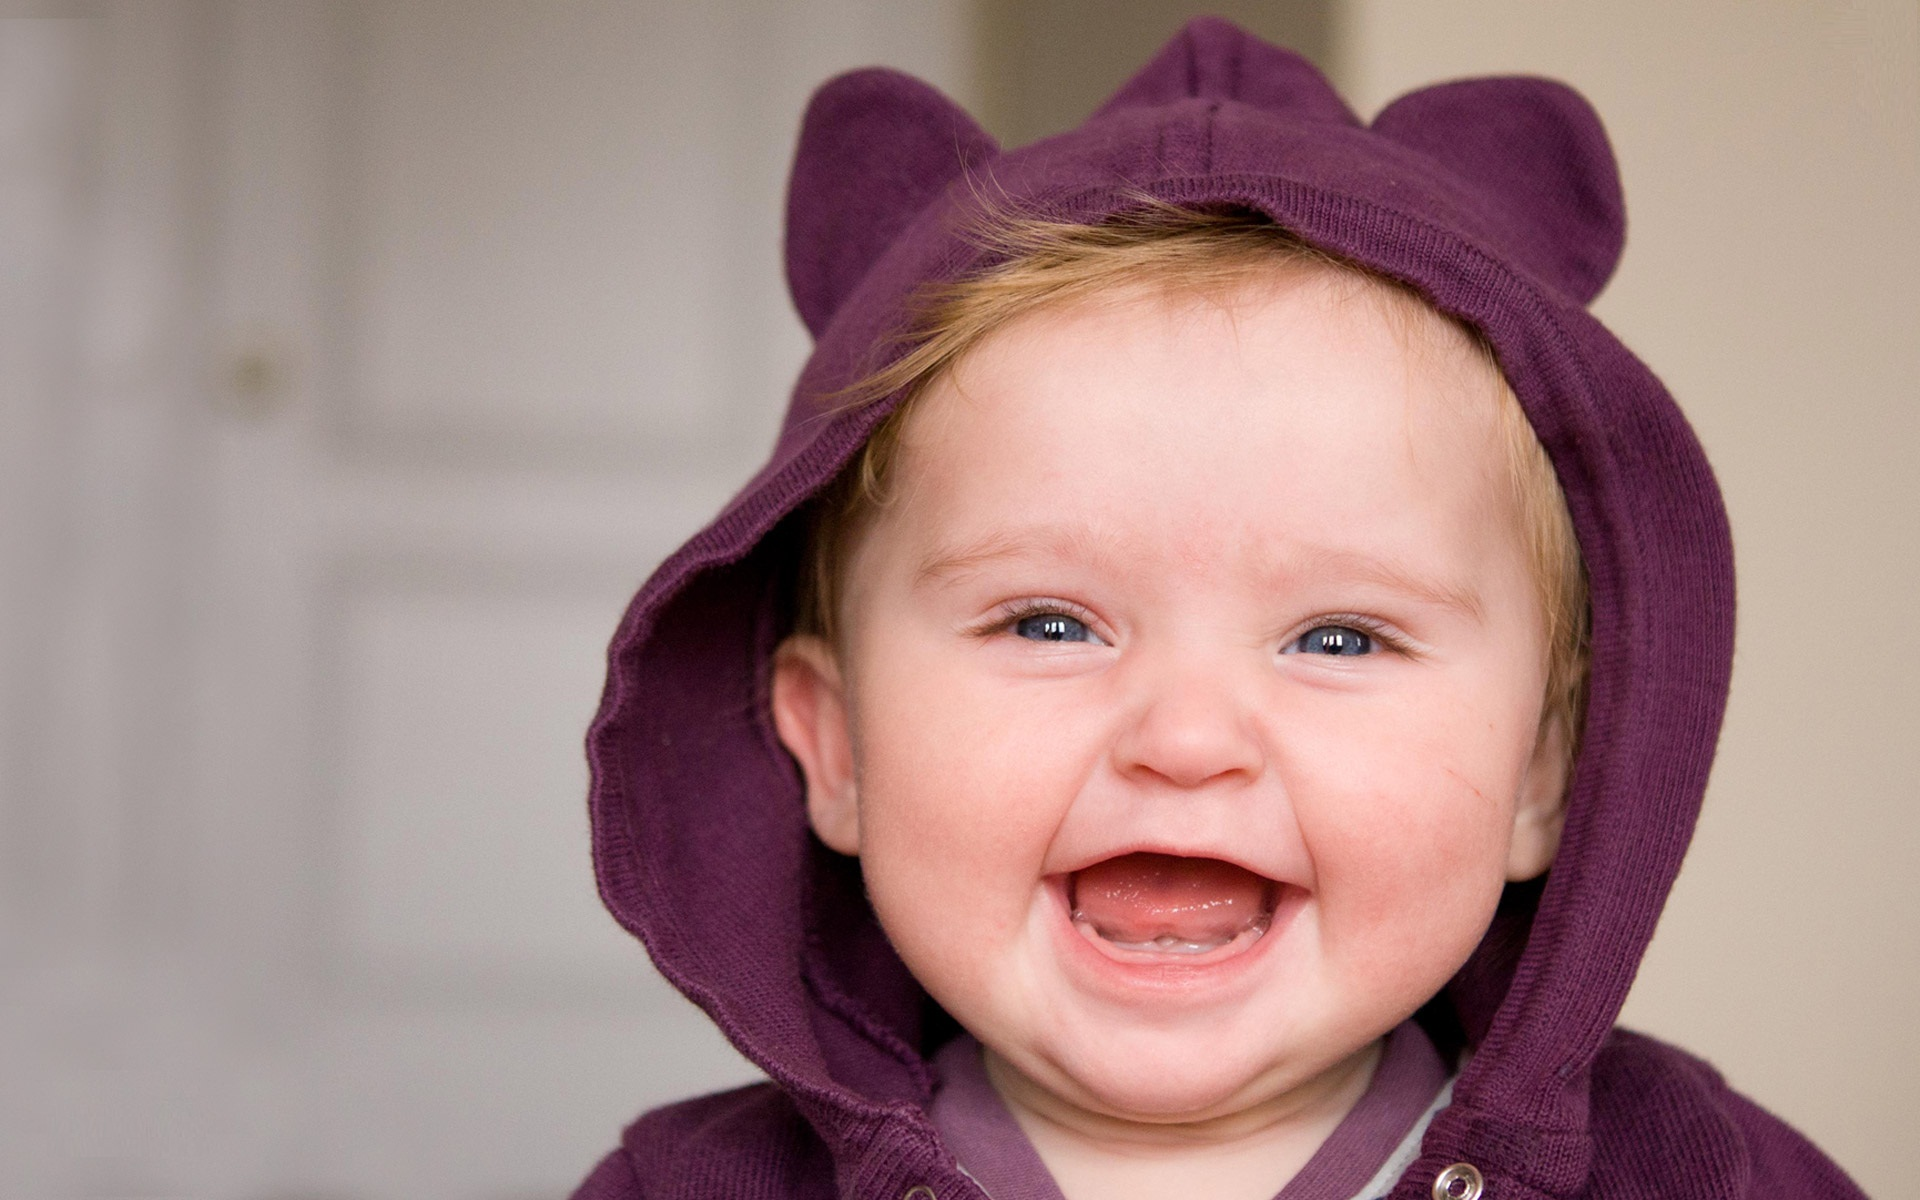 Amazing Smile Cute Baby Hd Free Wallpaper Hd Wallpaper